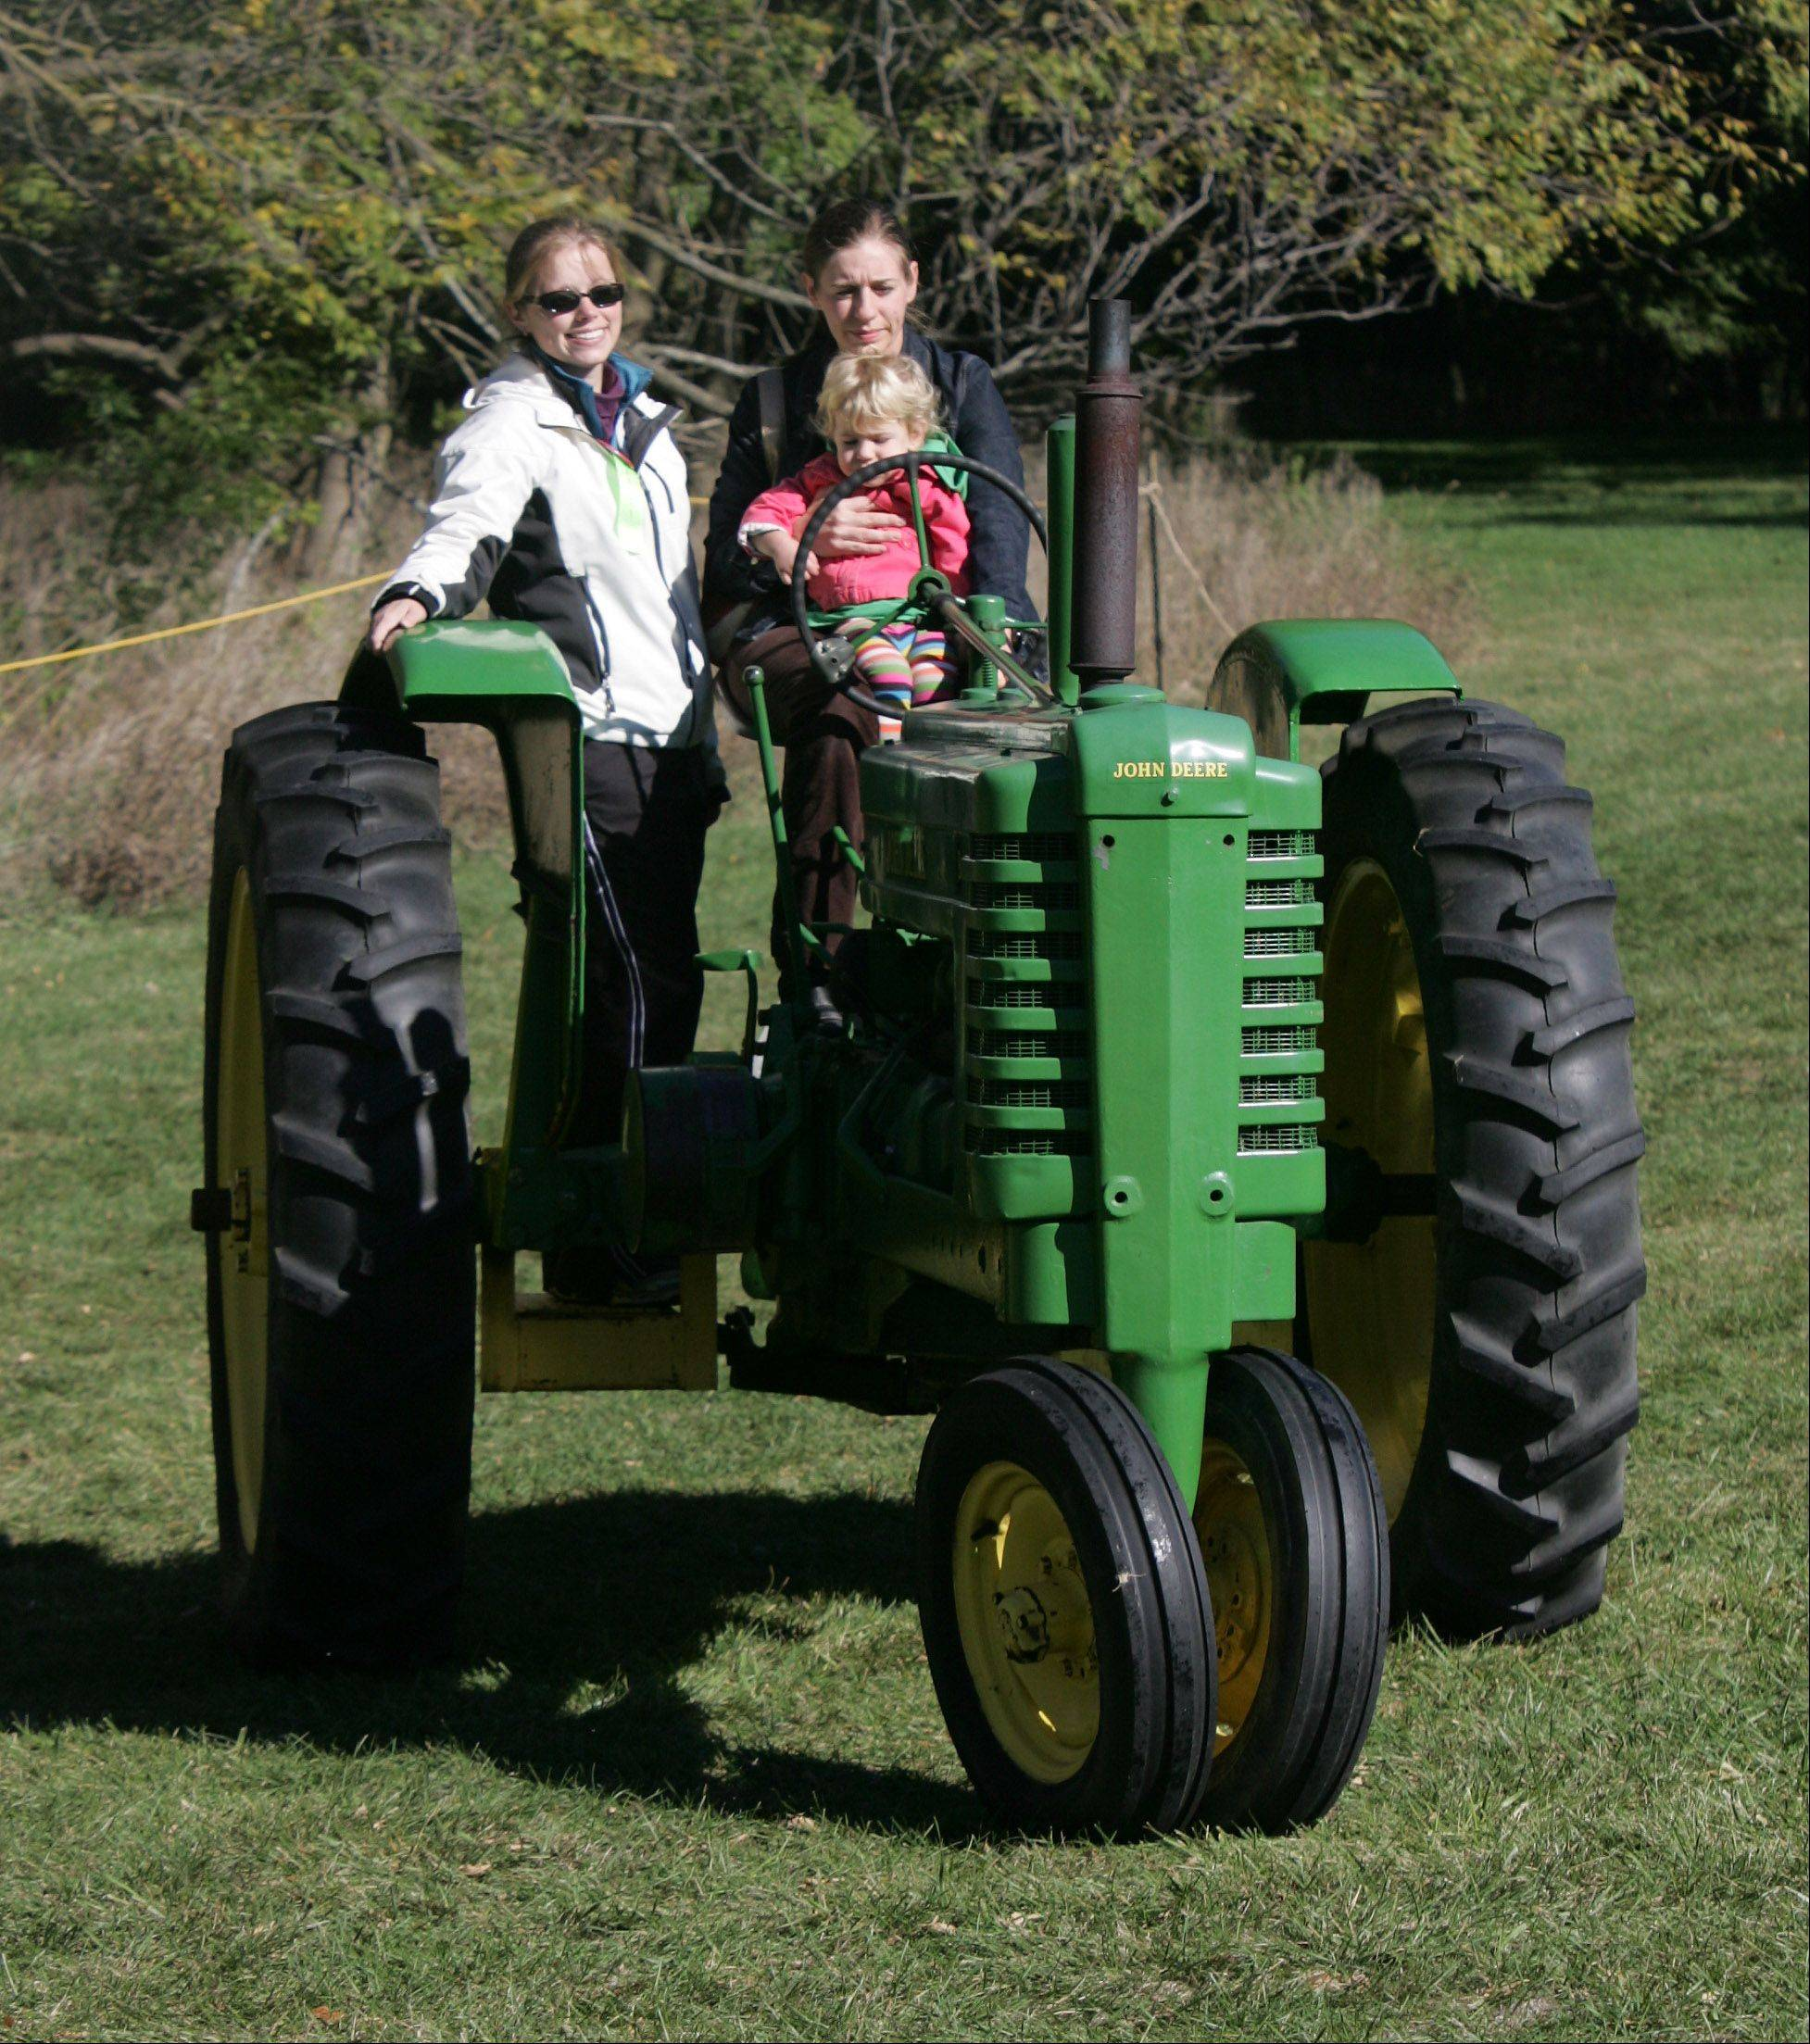 Dana Allan, of Libertyville, with her daughter, Indy, 2, in her lap, drive a 1941 B John Deere tractor with Rebecca Swanson during the 20th Annual Farm Heritage Festival Sunday at Lakewood Forest Preserve near Wauconda. The event was co-sponsored by the Lake County Discovery Museum and the Lake County Farm Heritage Association.